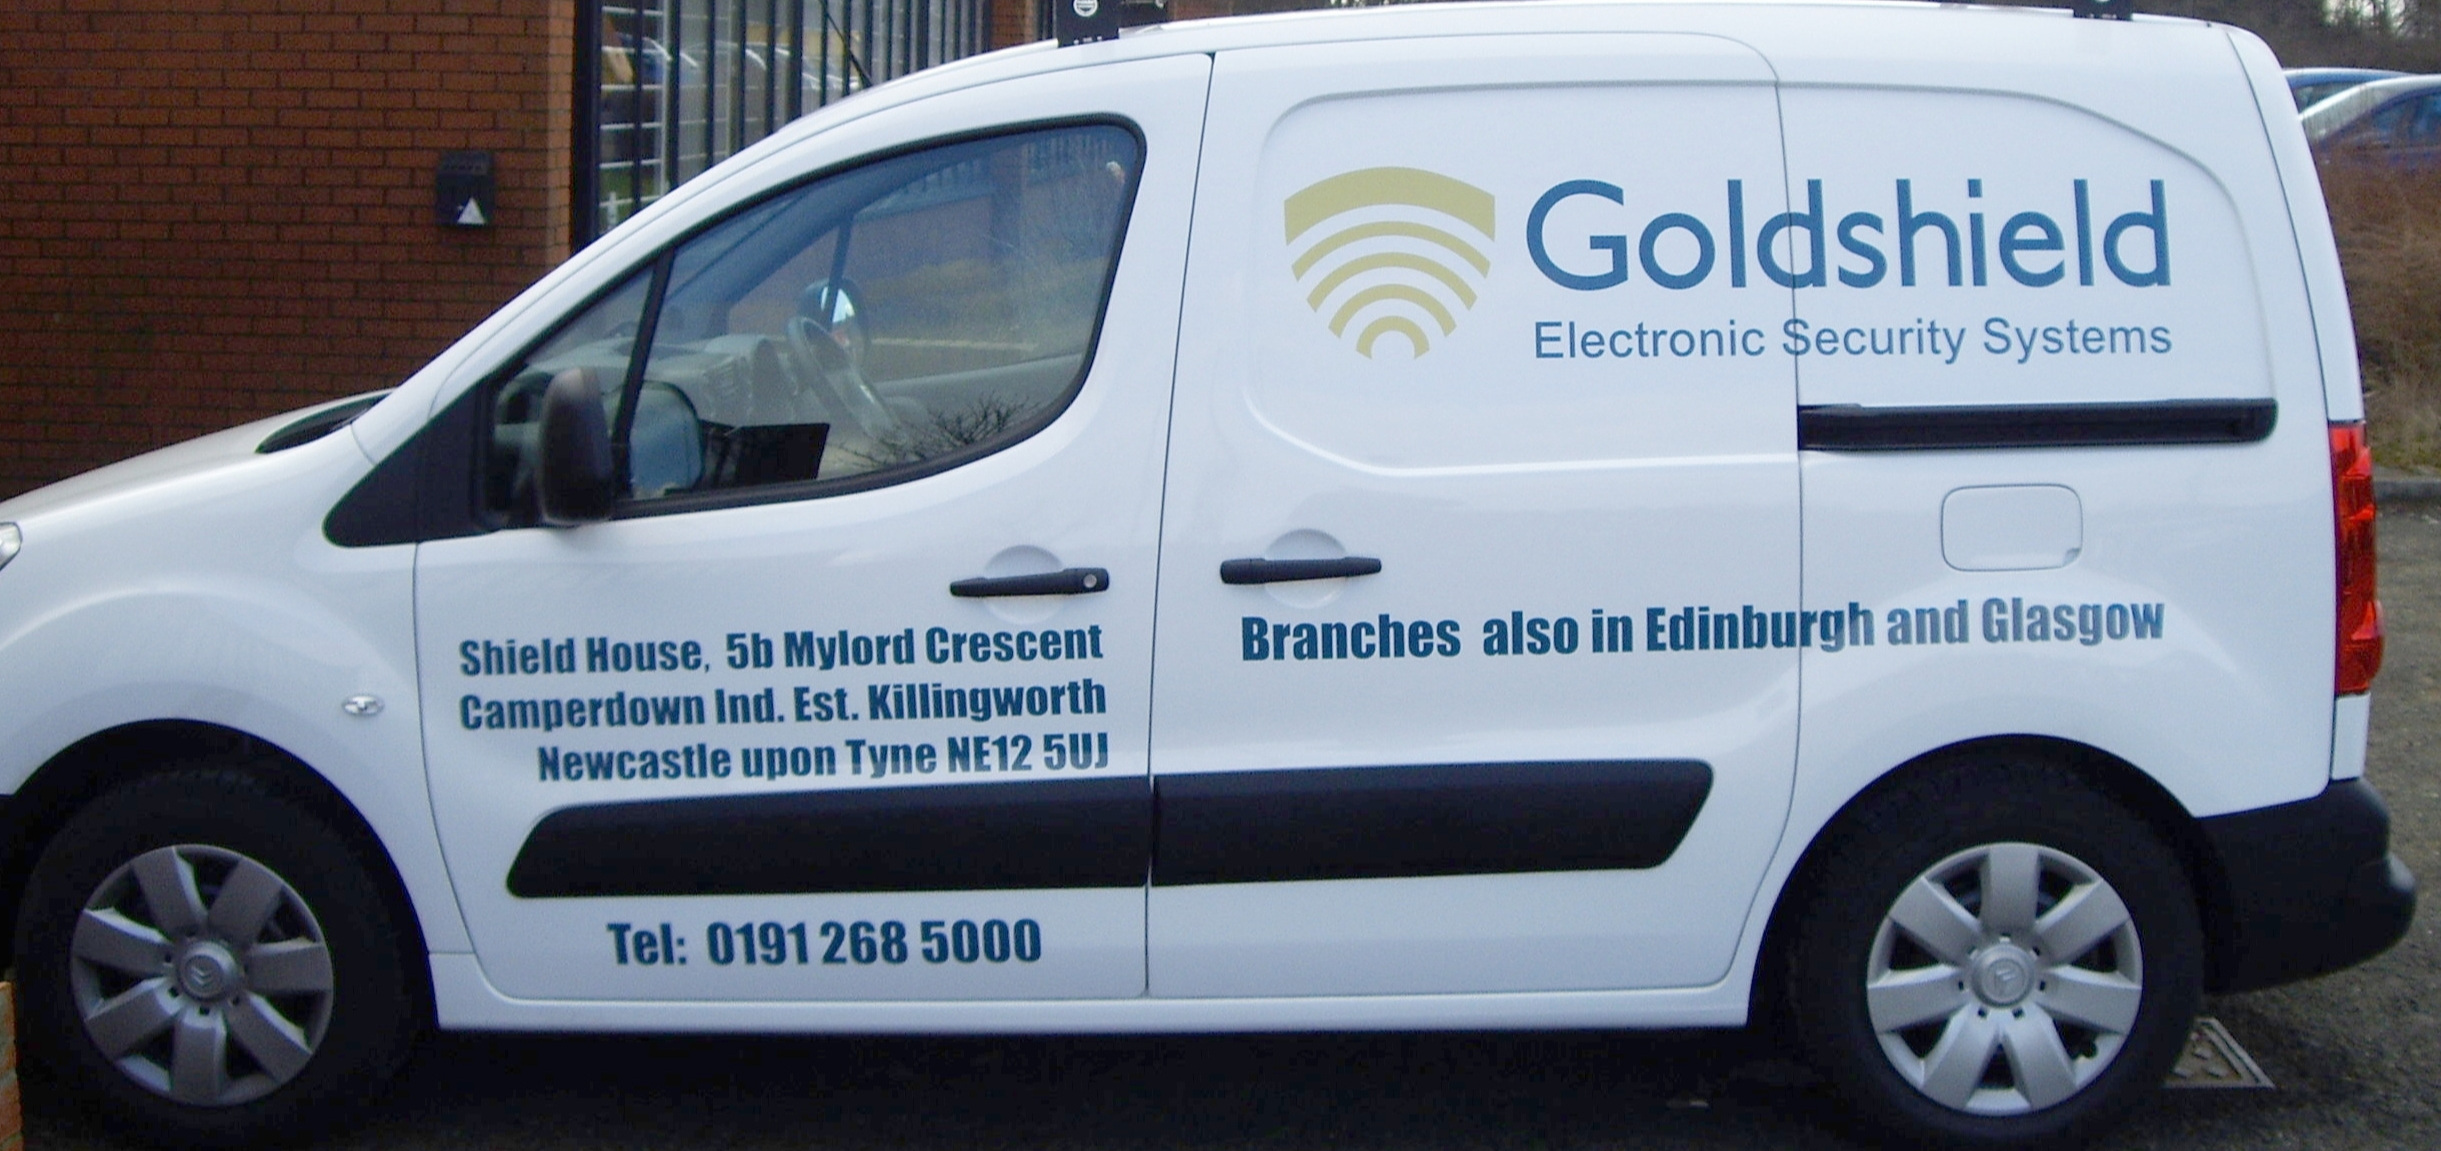 GOLDSHIELD ELECTRONIC SECURITY SYSTEMS